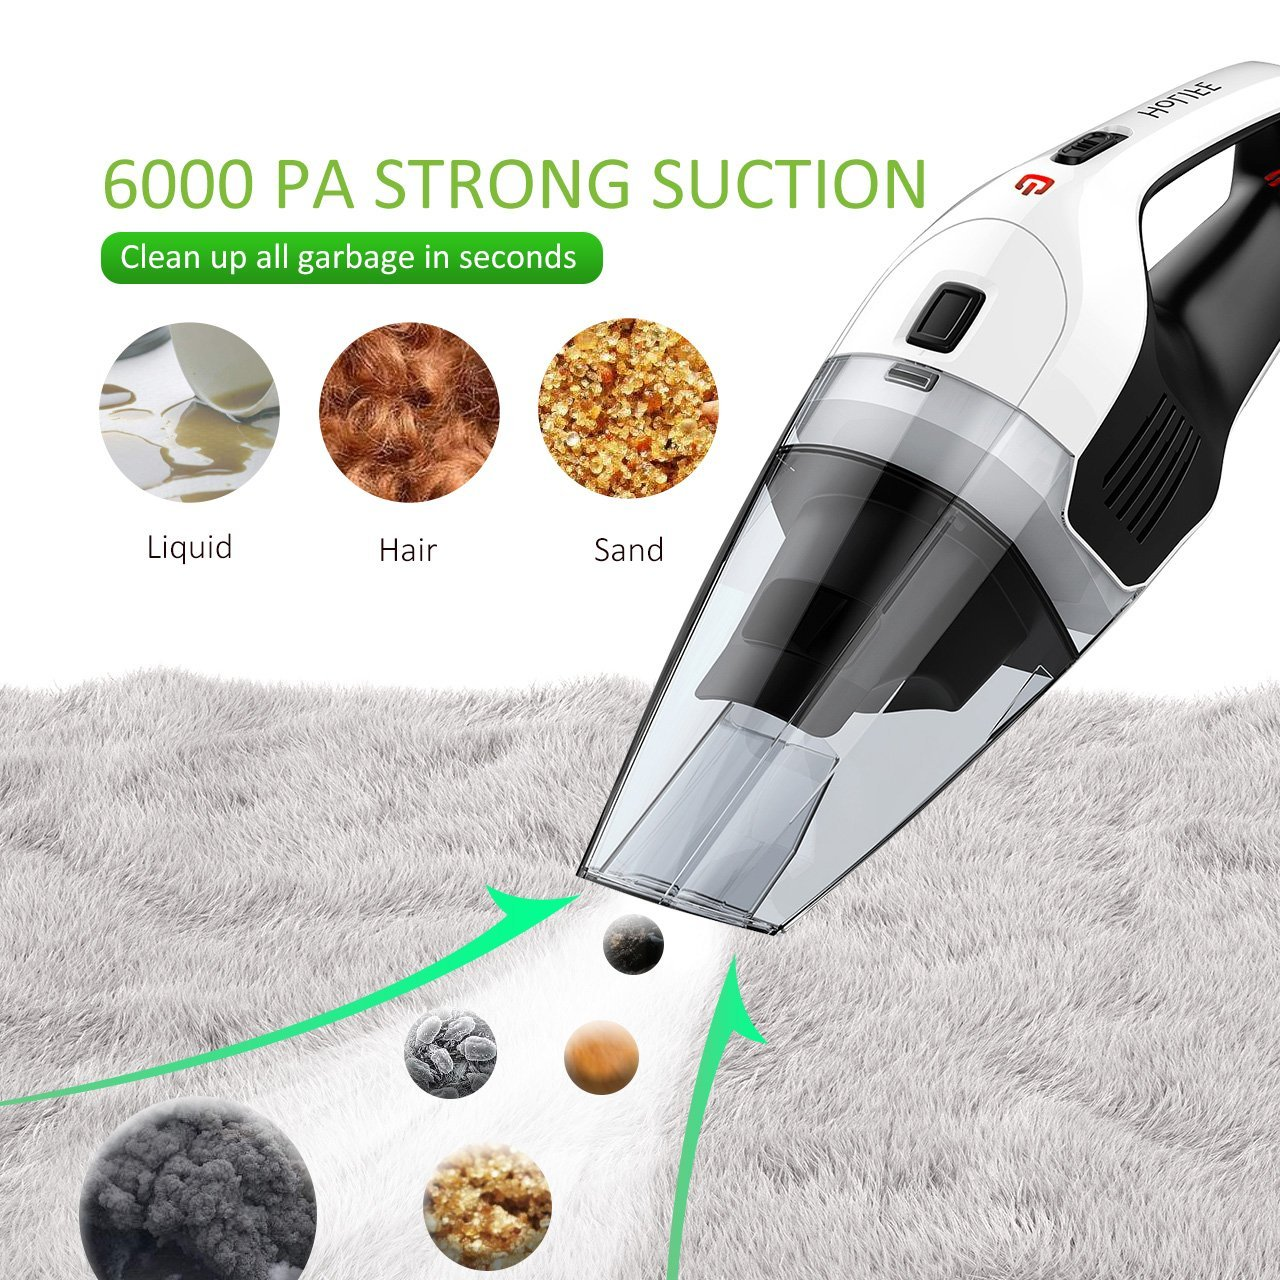 Hand Vacuum, HoLife Cordless Vacuum Cleaner with 14.8V Li-ion Battery Powered Rechargeable Quick Charge Tech and Cyclone Suction Lightweight Hand Vac New Version